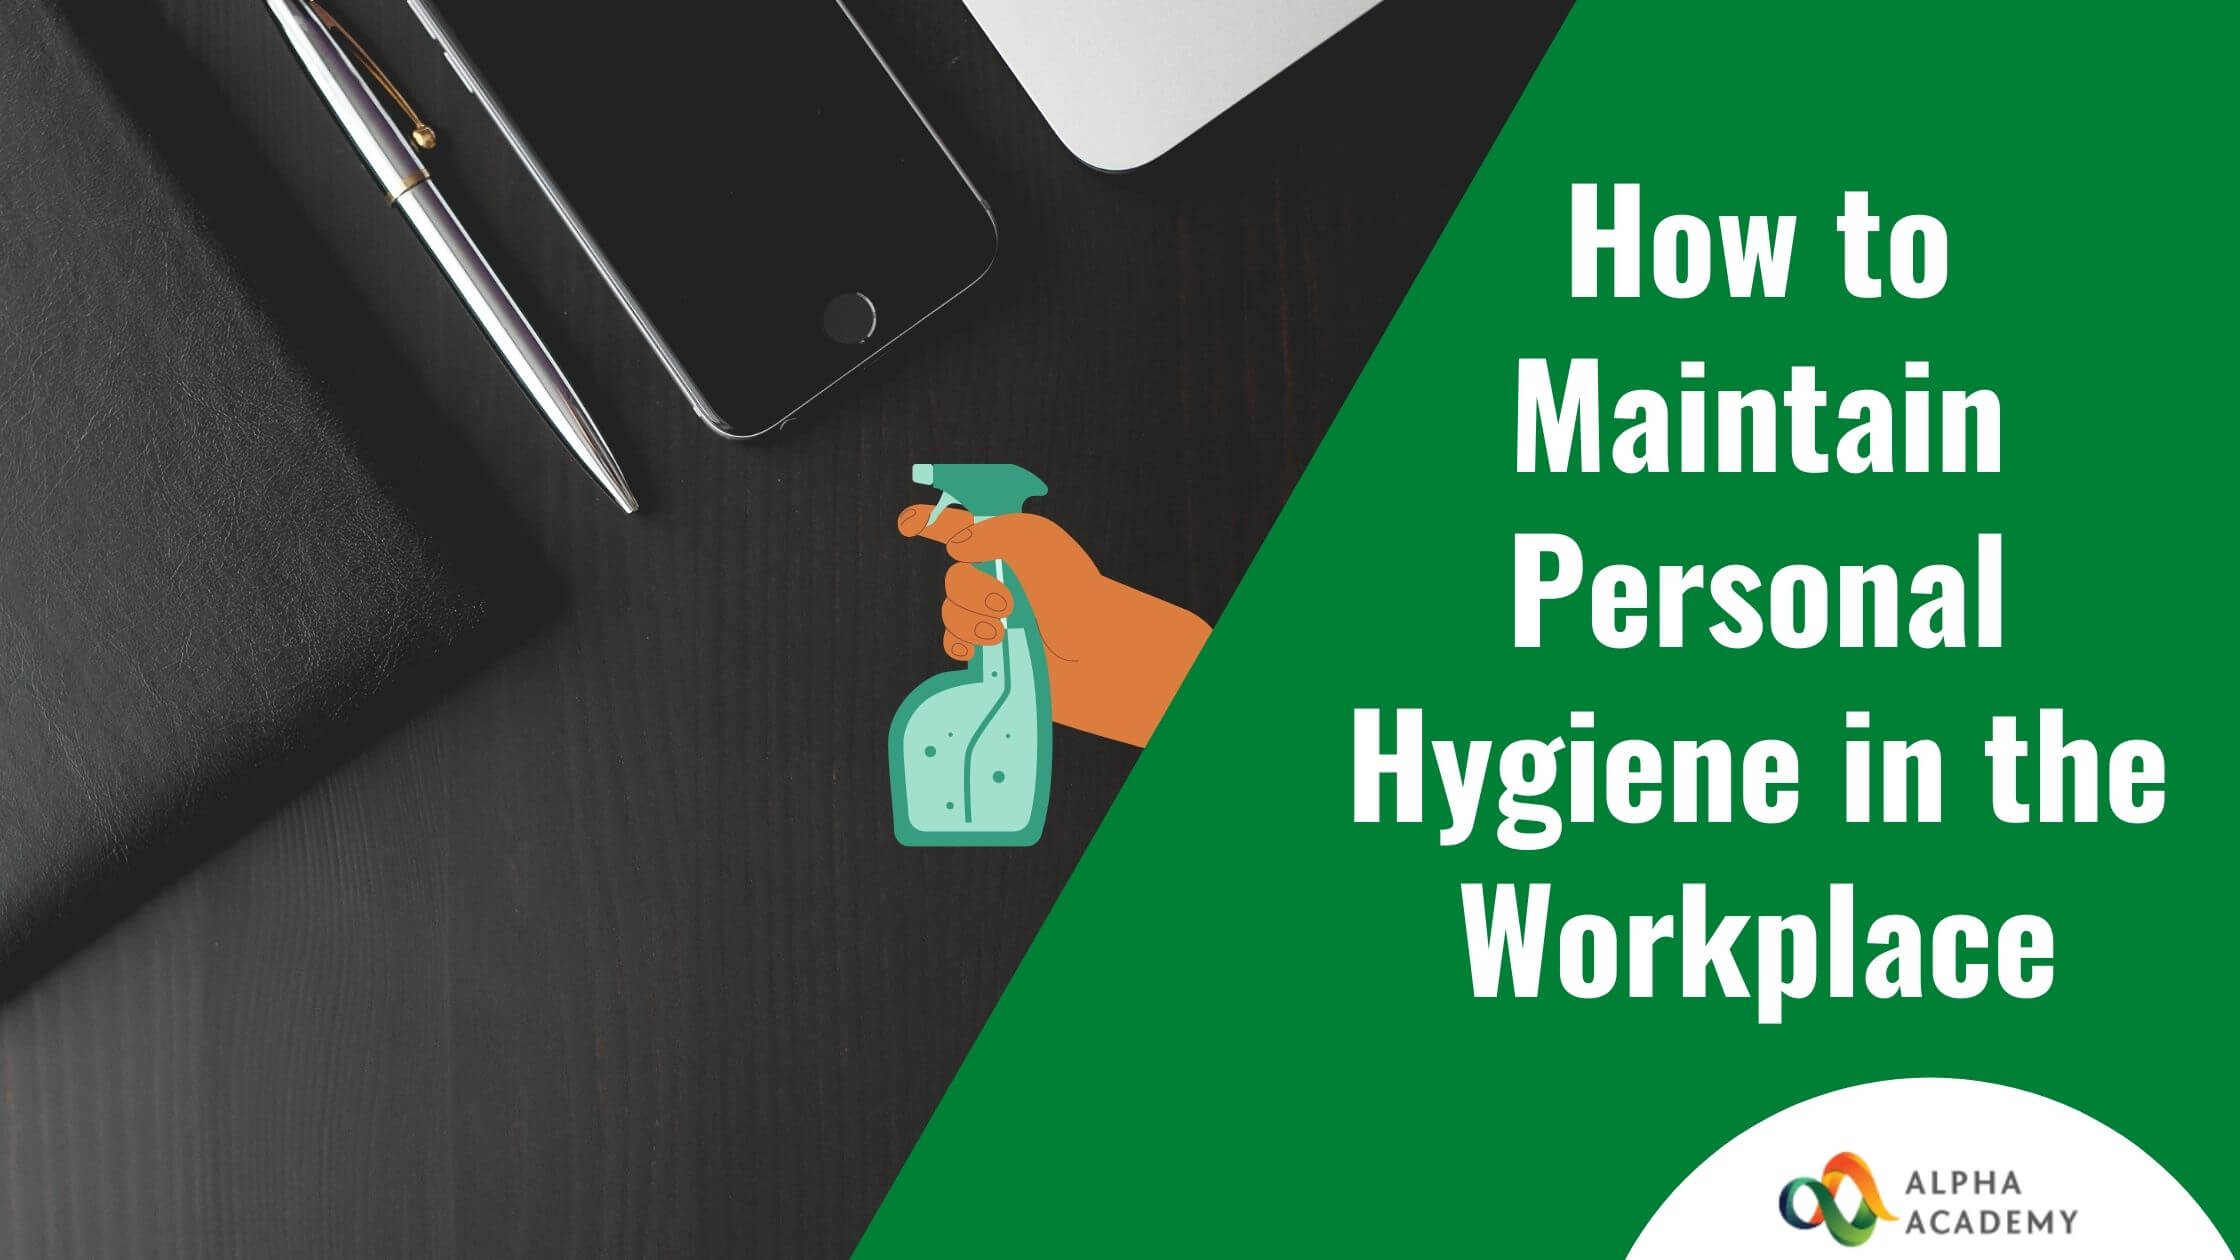 Know how to maintain your personal hygiene in the workplace